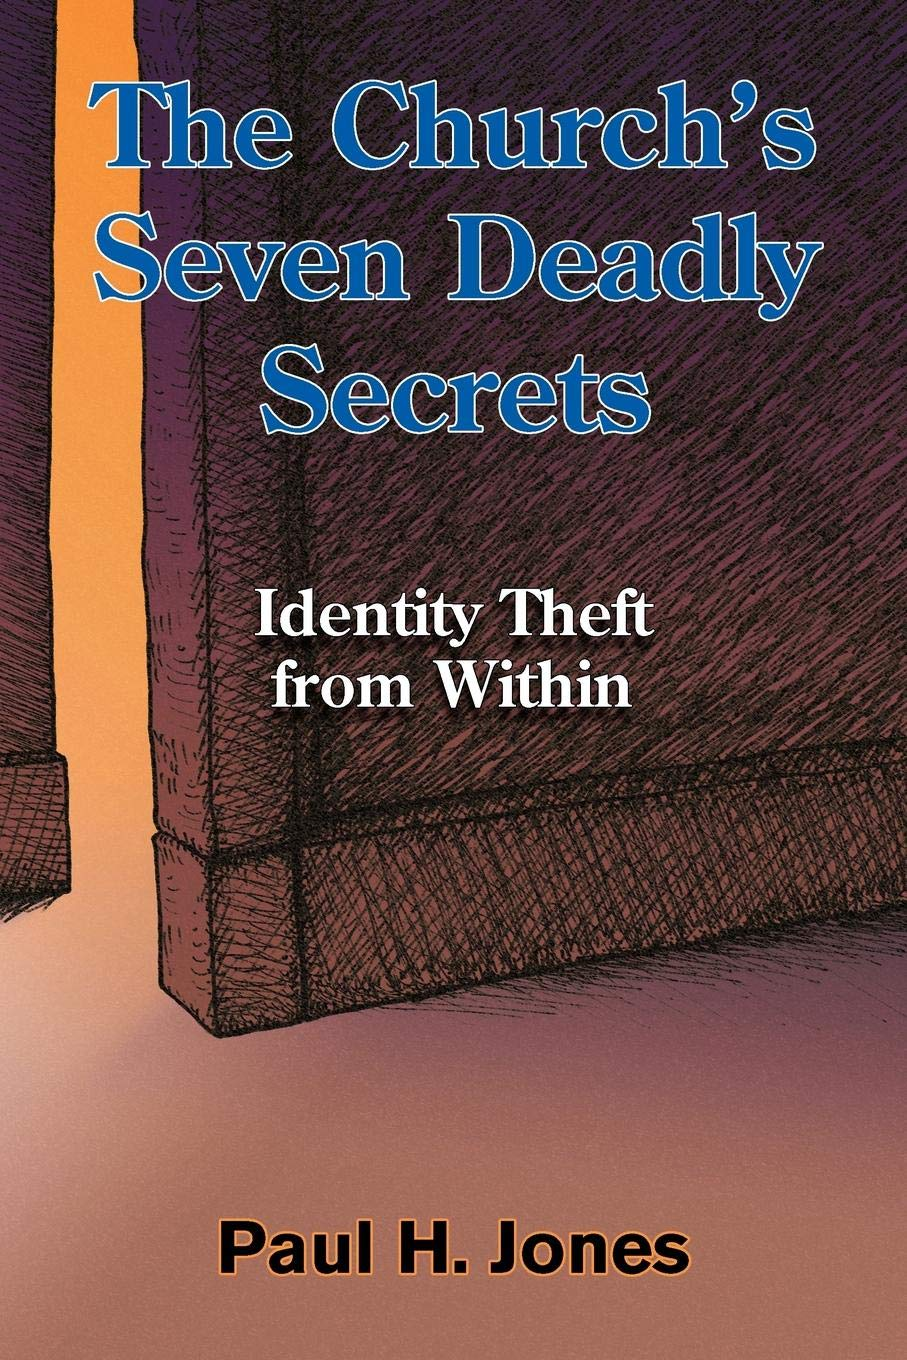 The Churchs Seven Deadly Secrets: Identity Theft from Within